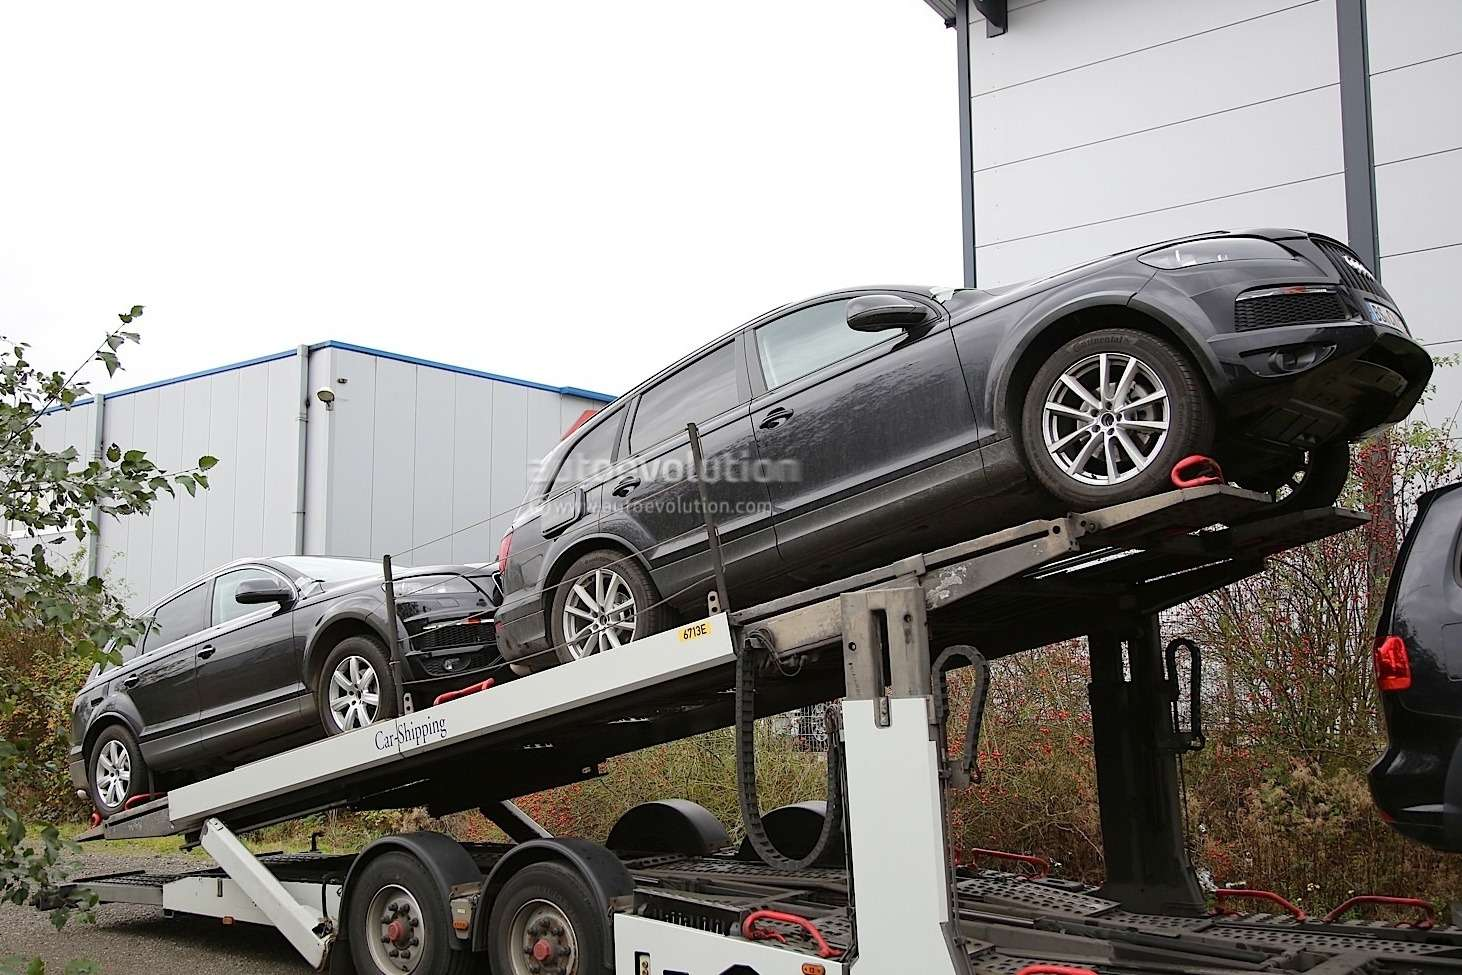 new-2018-vw-touareg-spied-for-the-first-time-hiding-as-audi-q7_4